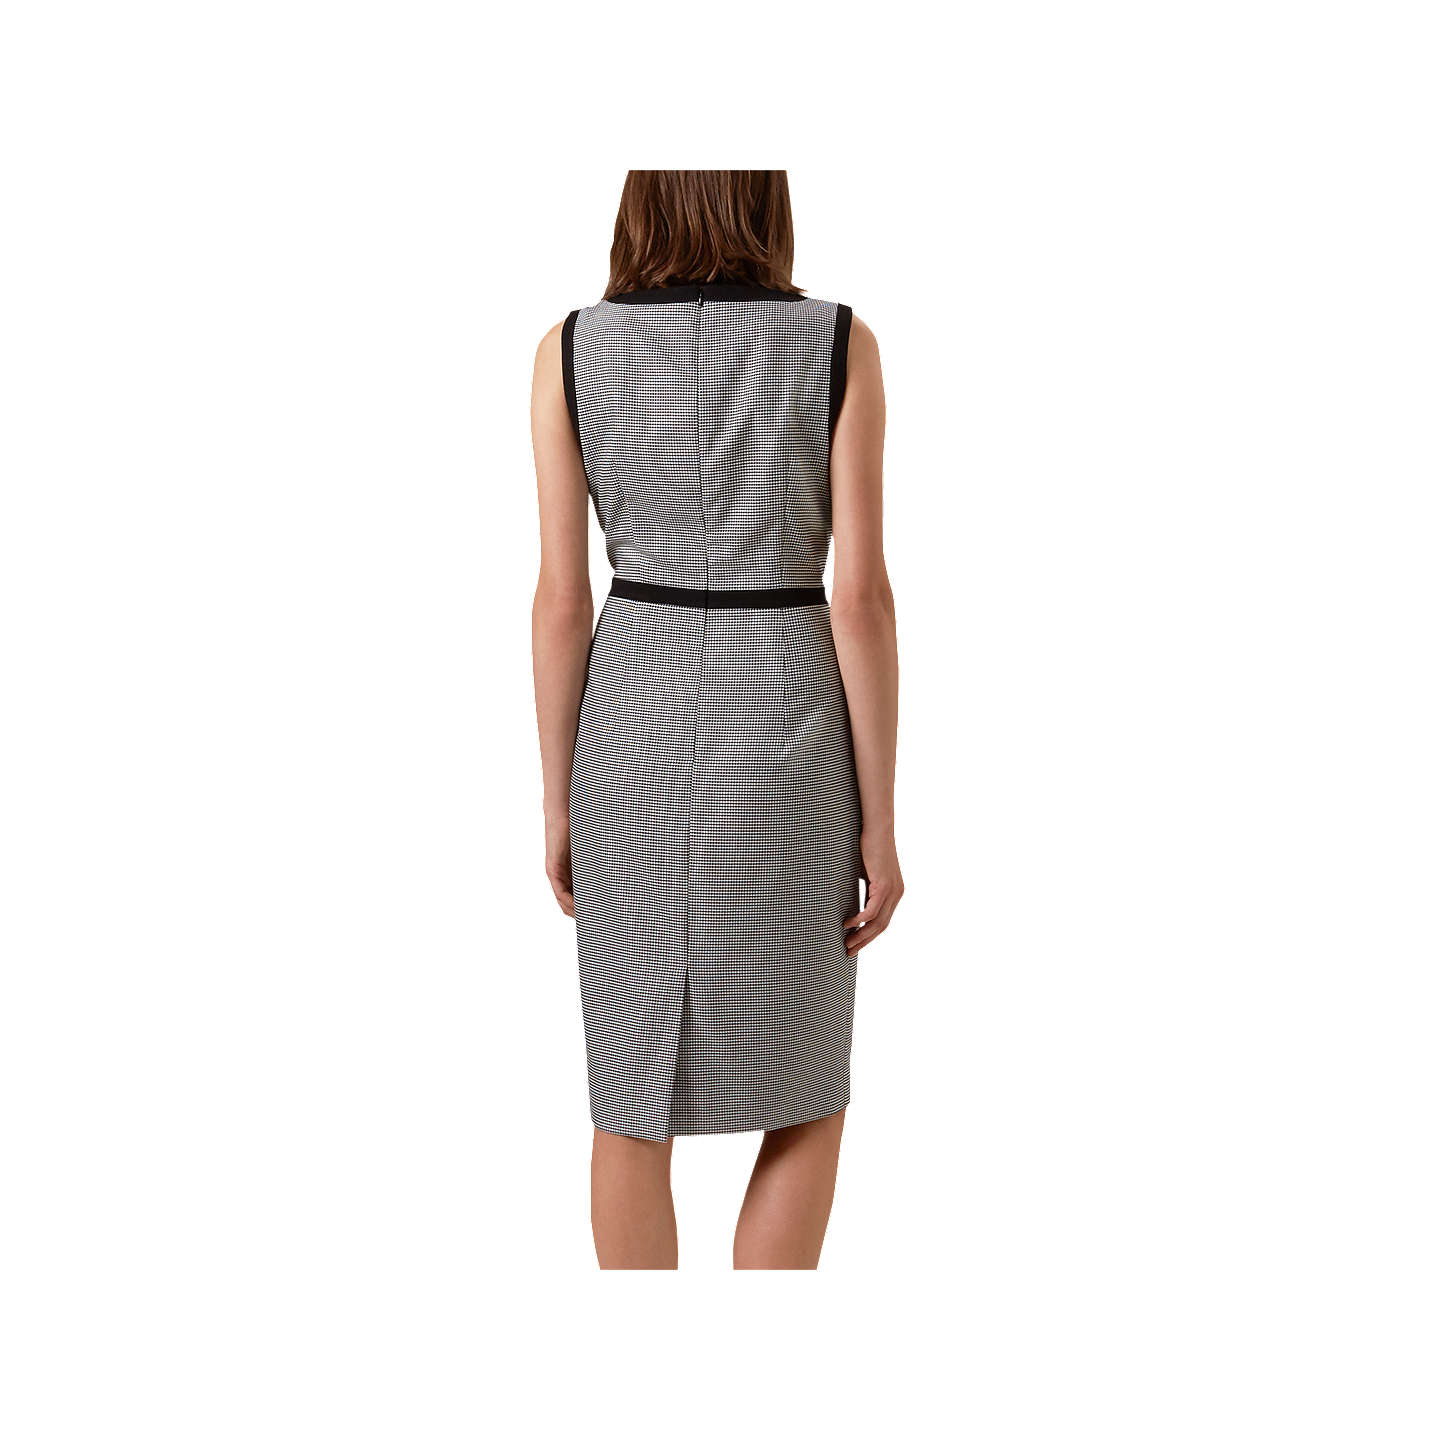 BuyHobbs Sian Dress, Black/White, 6 Online at johnlewis.com